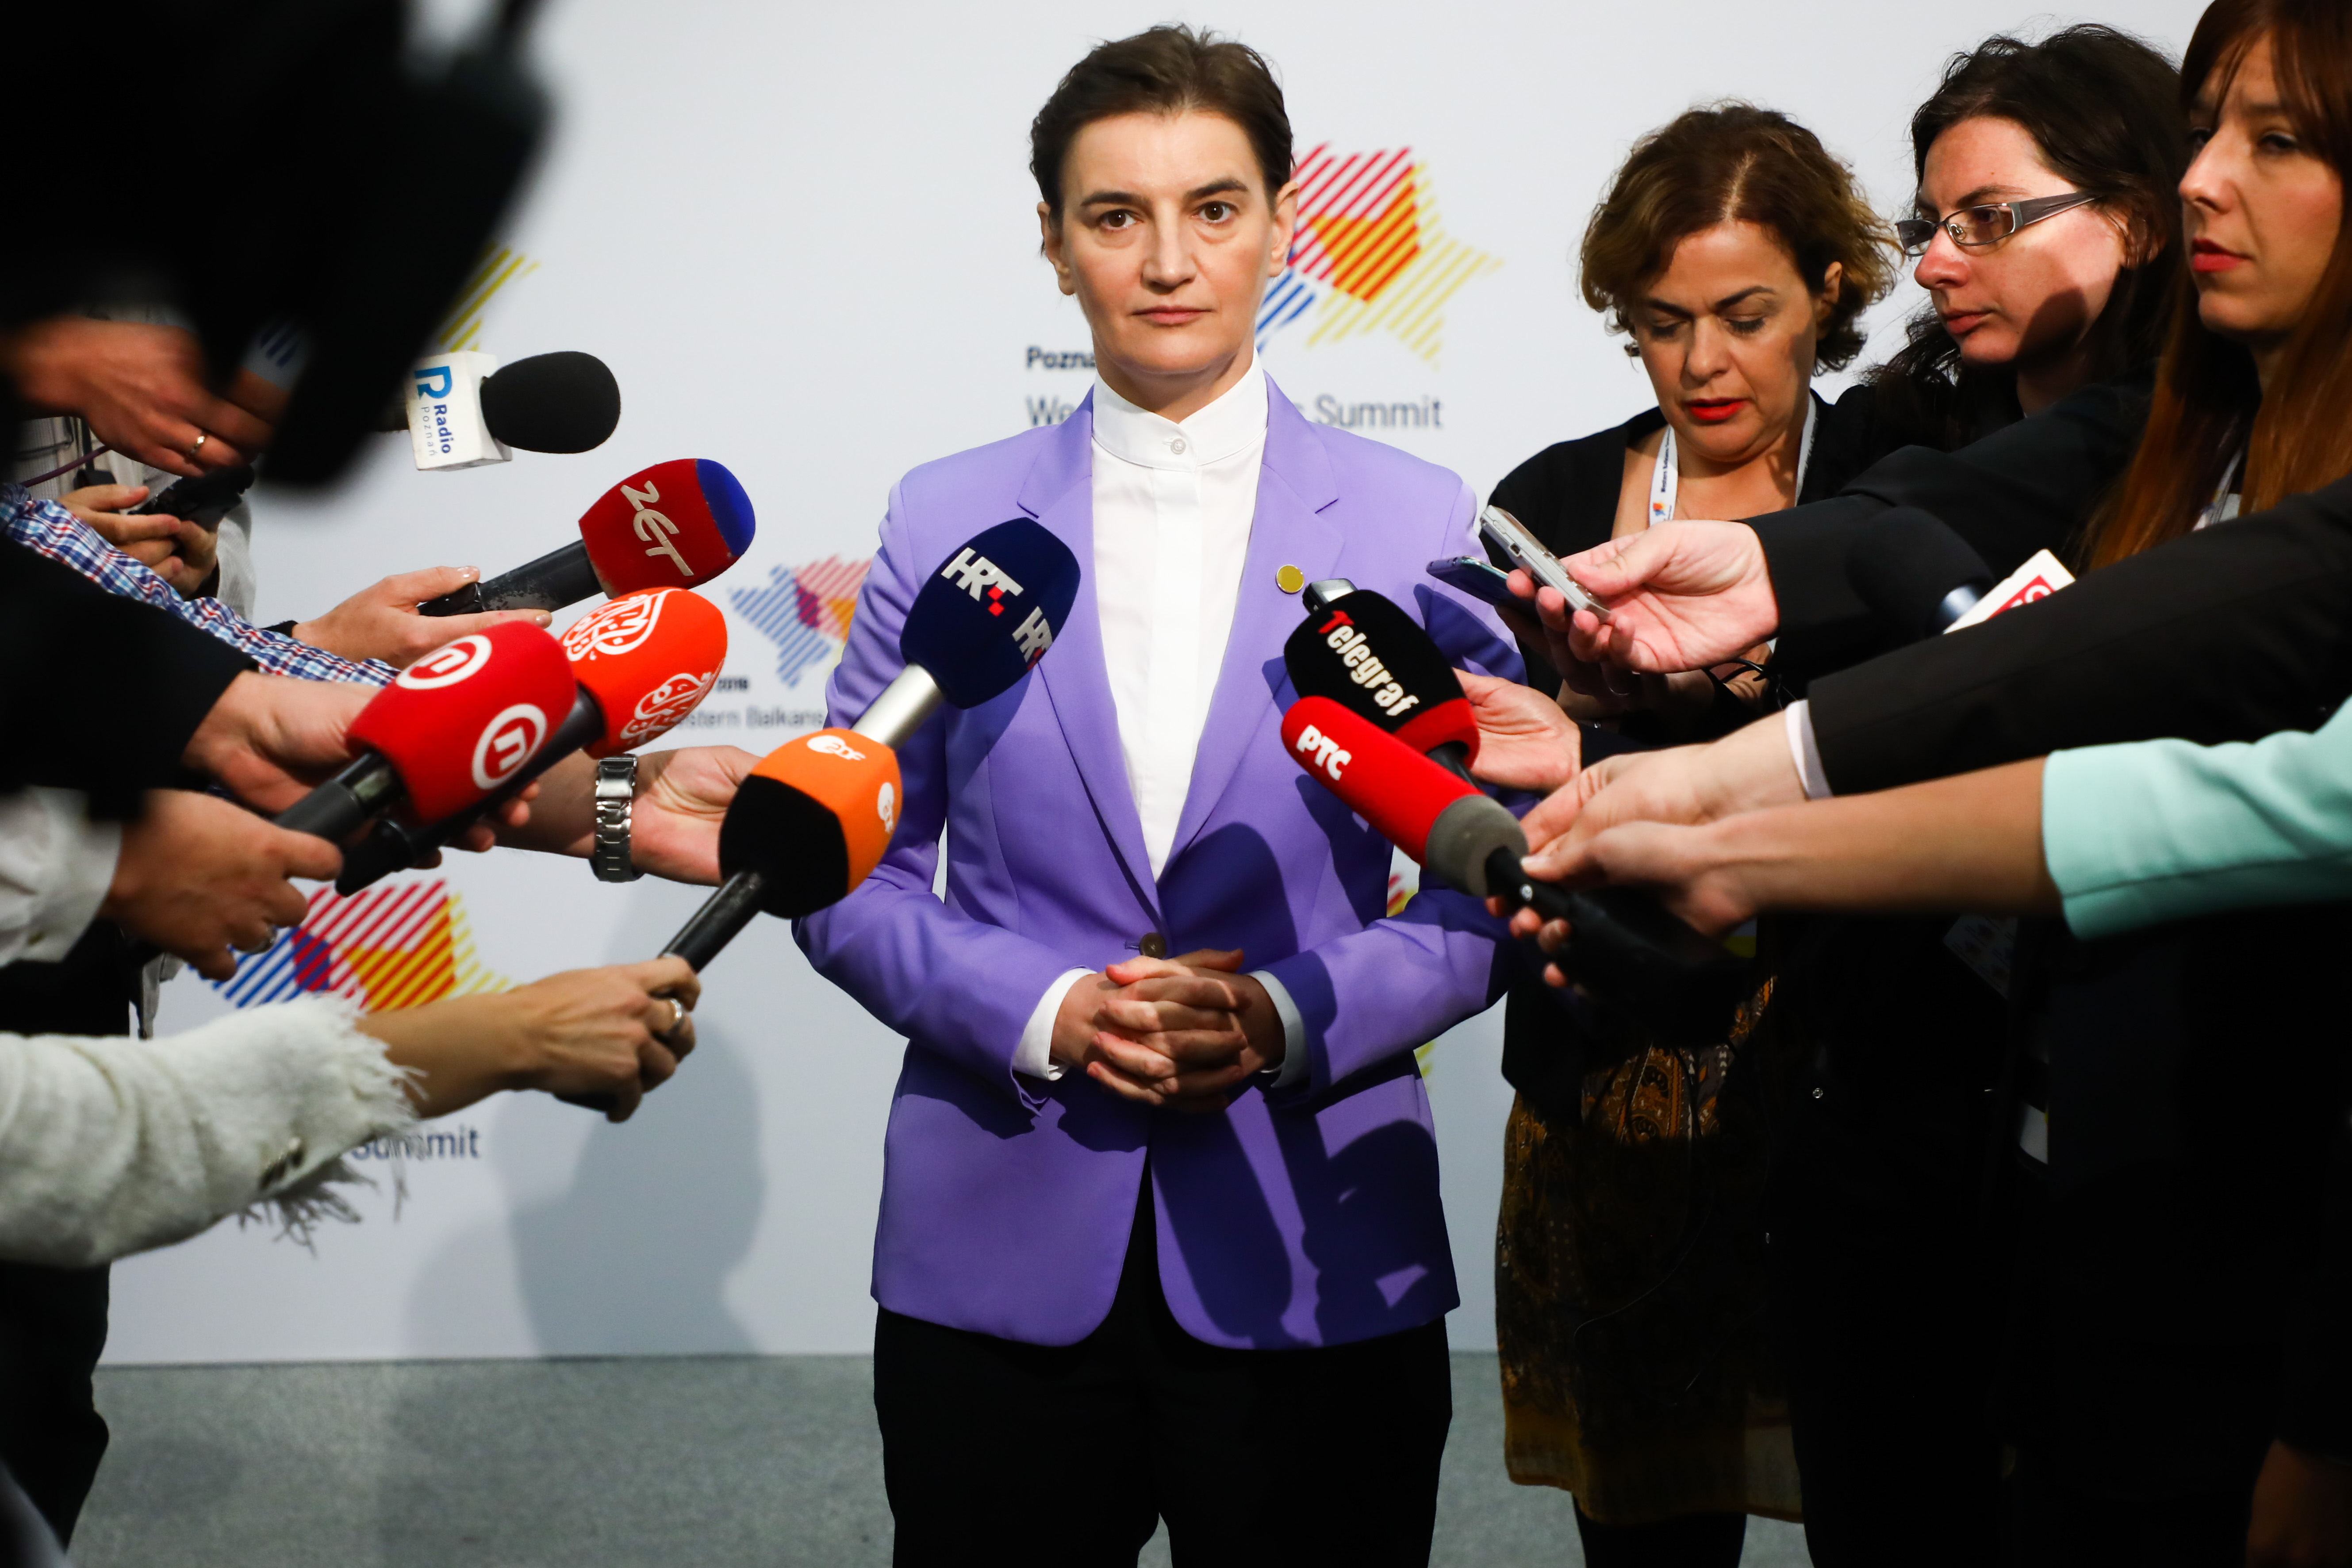 Ana Brnabic, Prime Minister of Serbia, during Western Balkans Summit at the Poznan International Fair in Poznan, Poland on 5 July, 2019.